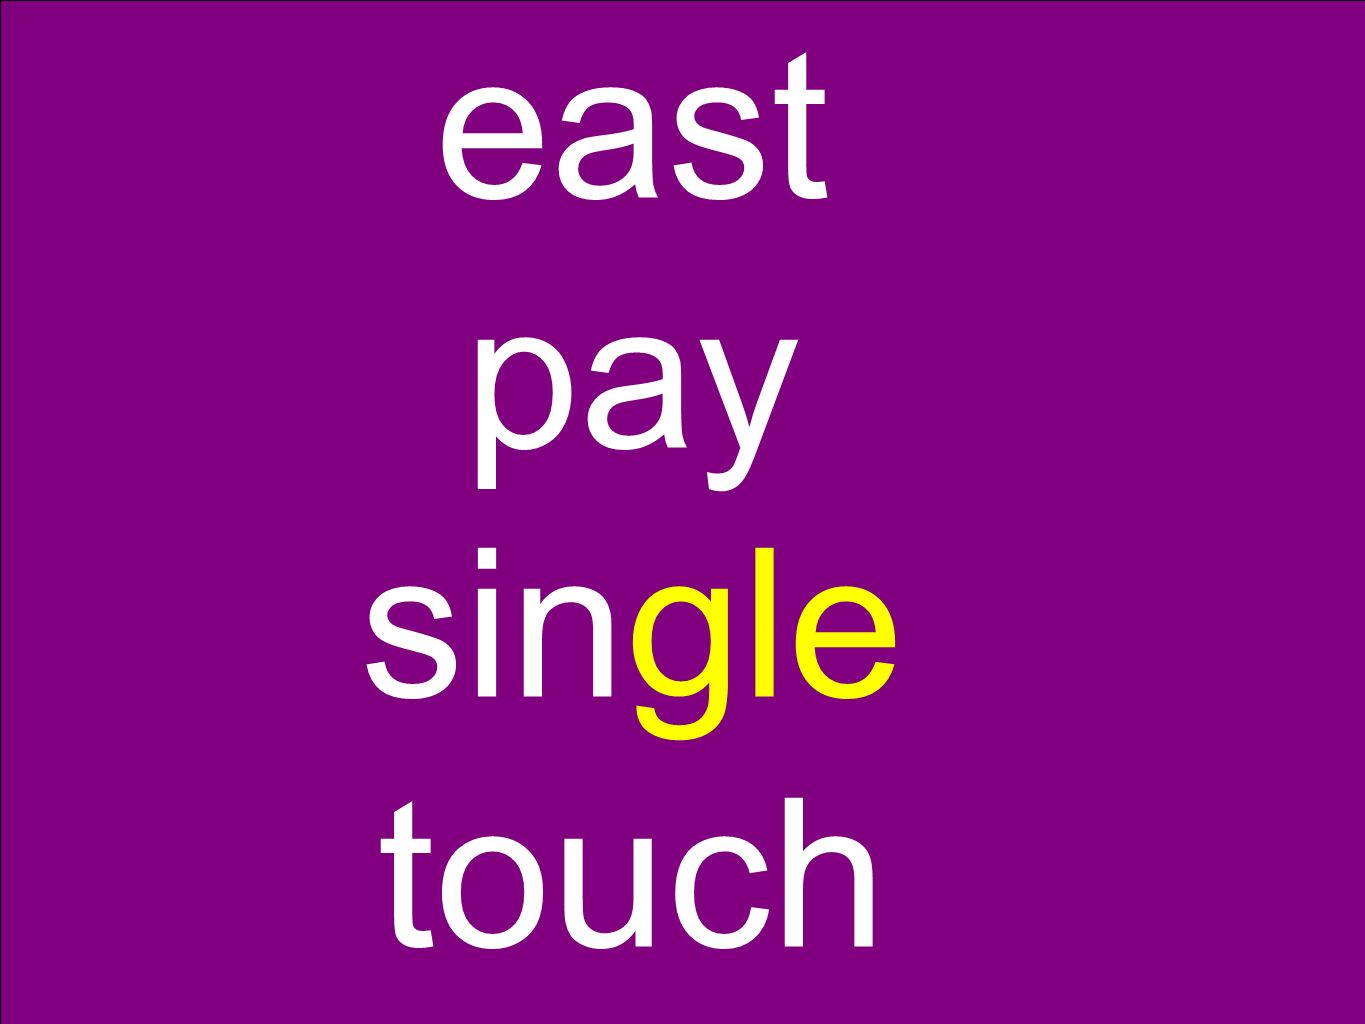 east pay single touch